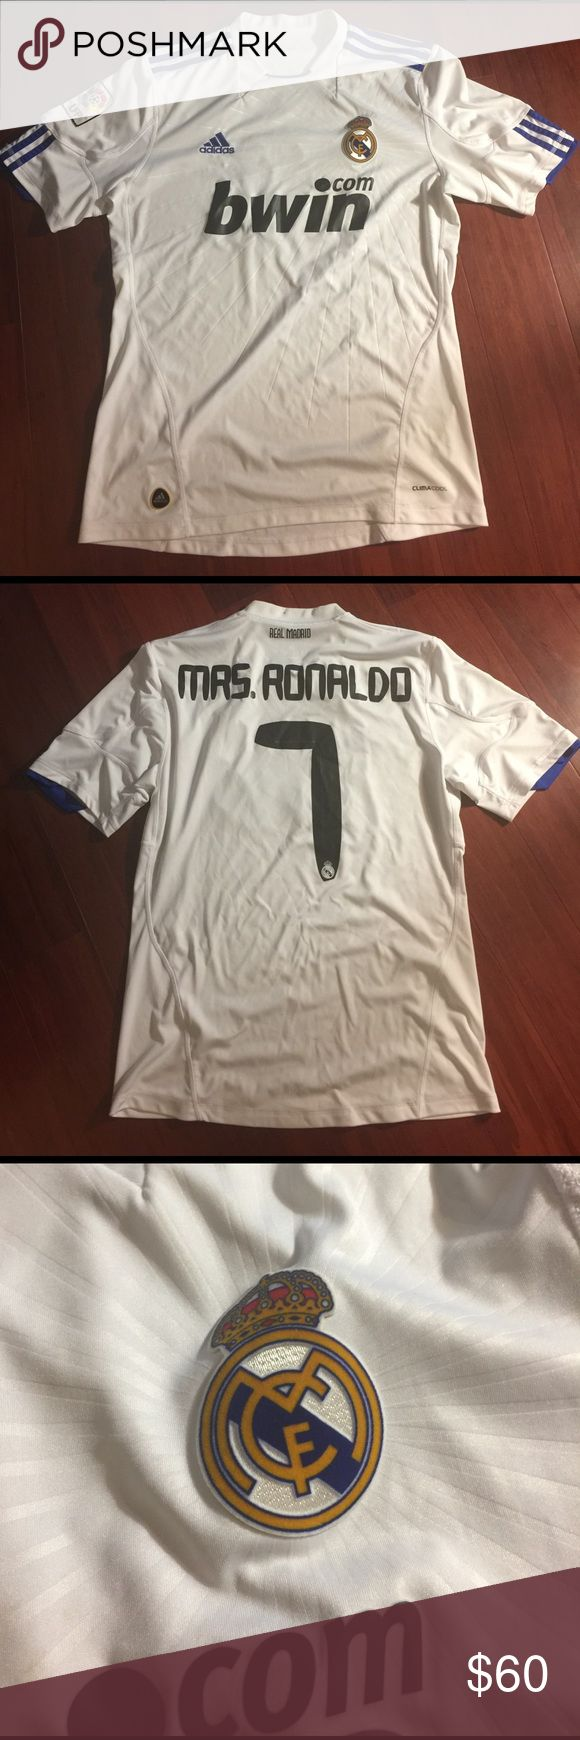 Calling all Cristiano Ronaldo Fans Real Madrid Soccer Jersey Men's Medium . Costume Made for a Mrs. Ronaldo back name Adidas Other